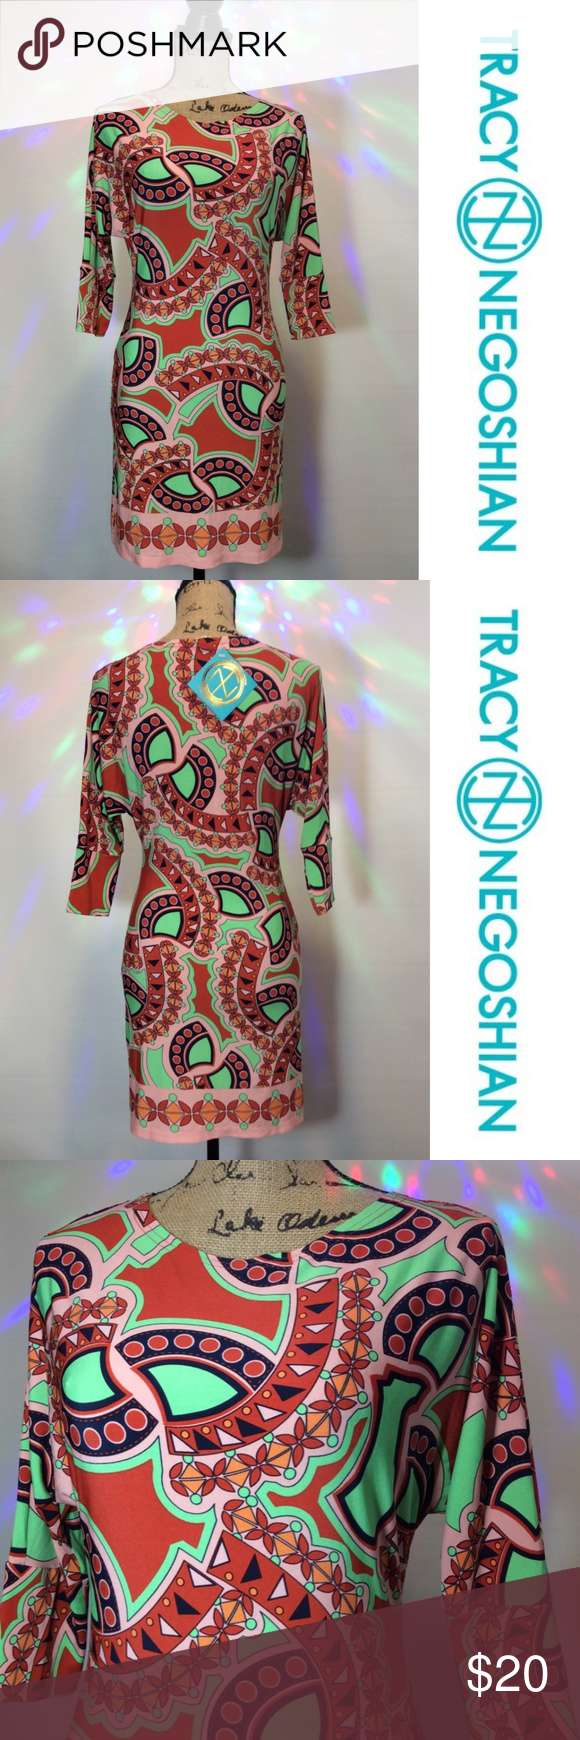 How To Include Taxidermy Into Trendy Home Decor: Tracy Negoshian Dress NWT 3/4 Sleeve Boutique (With Images)